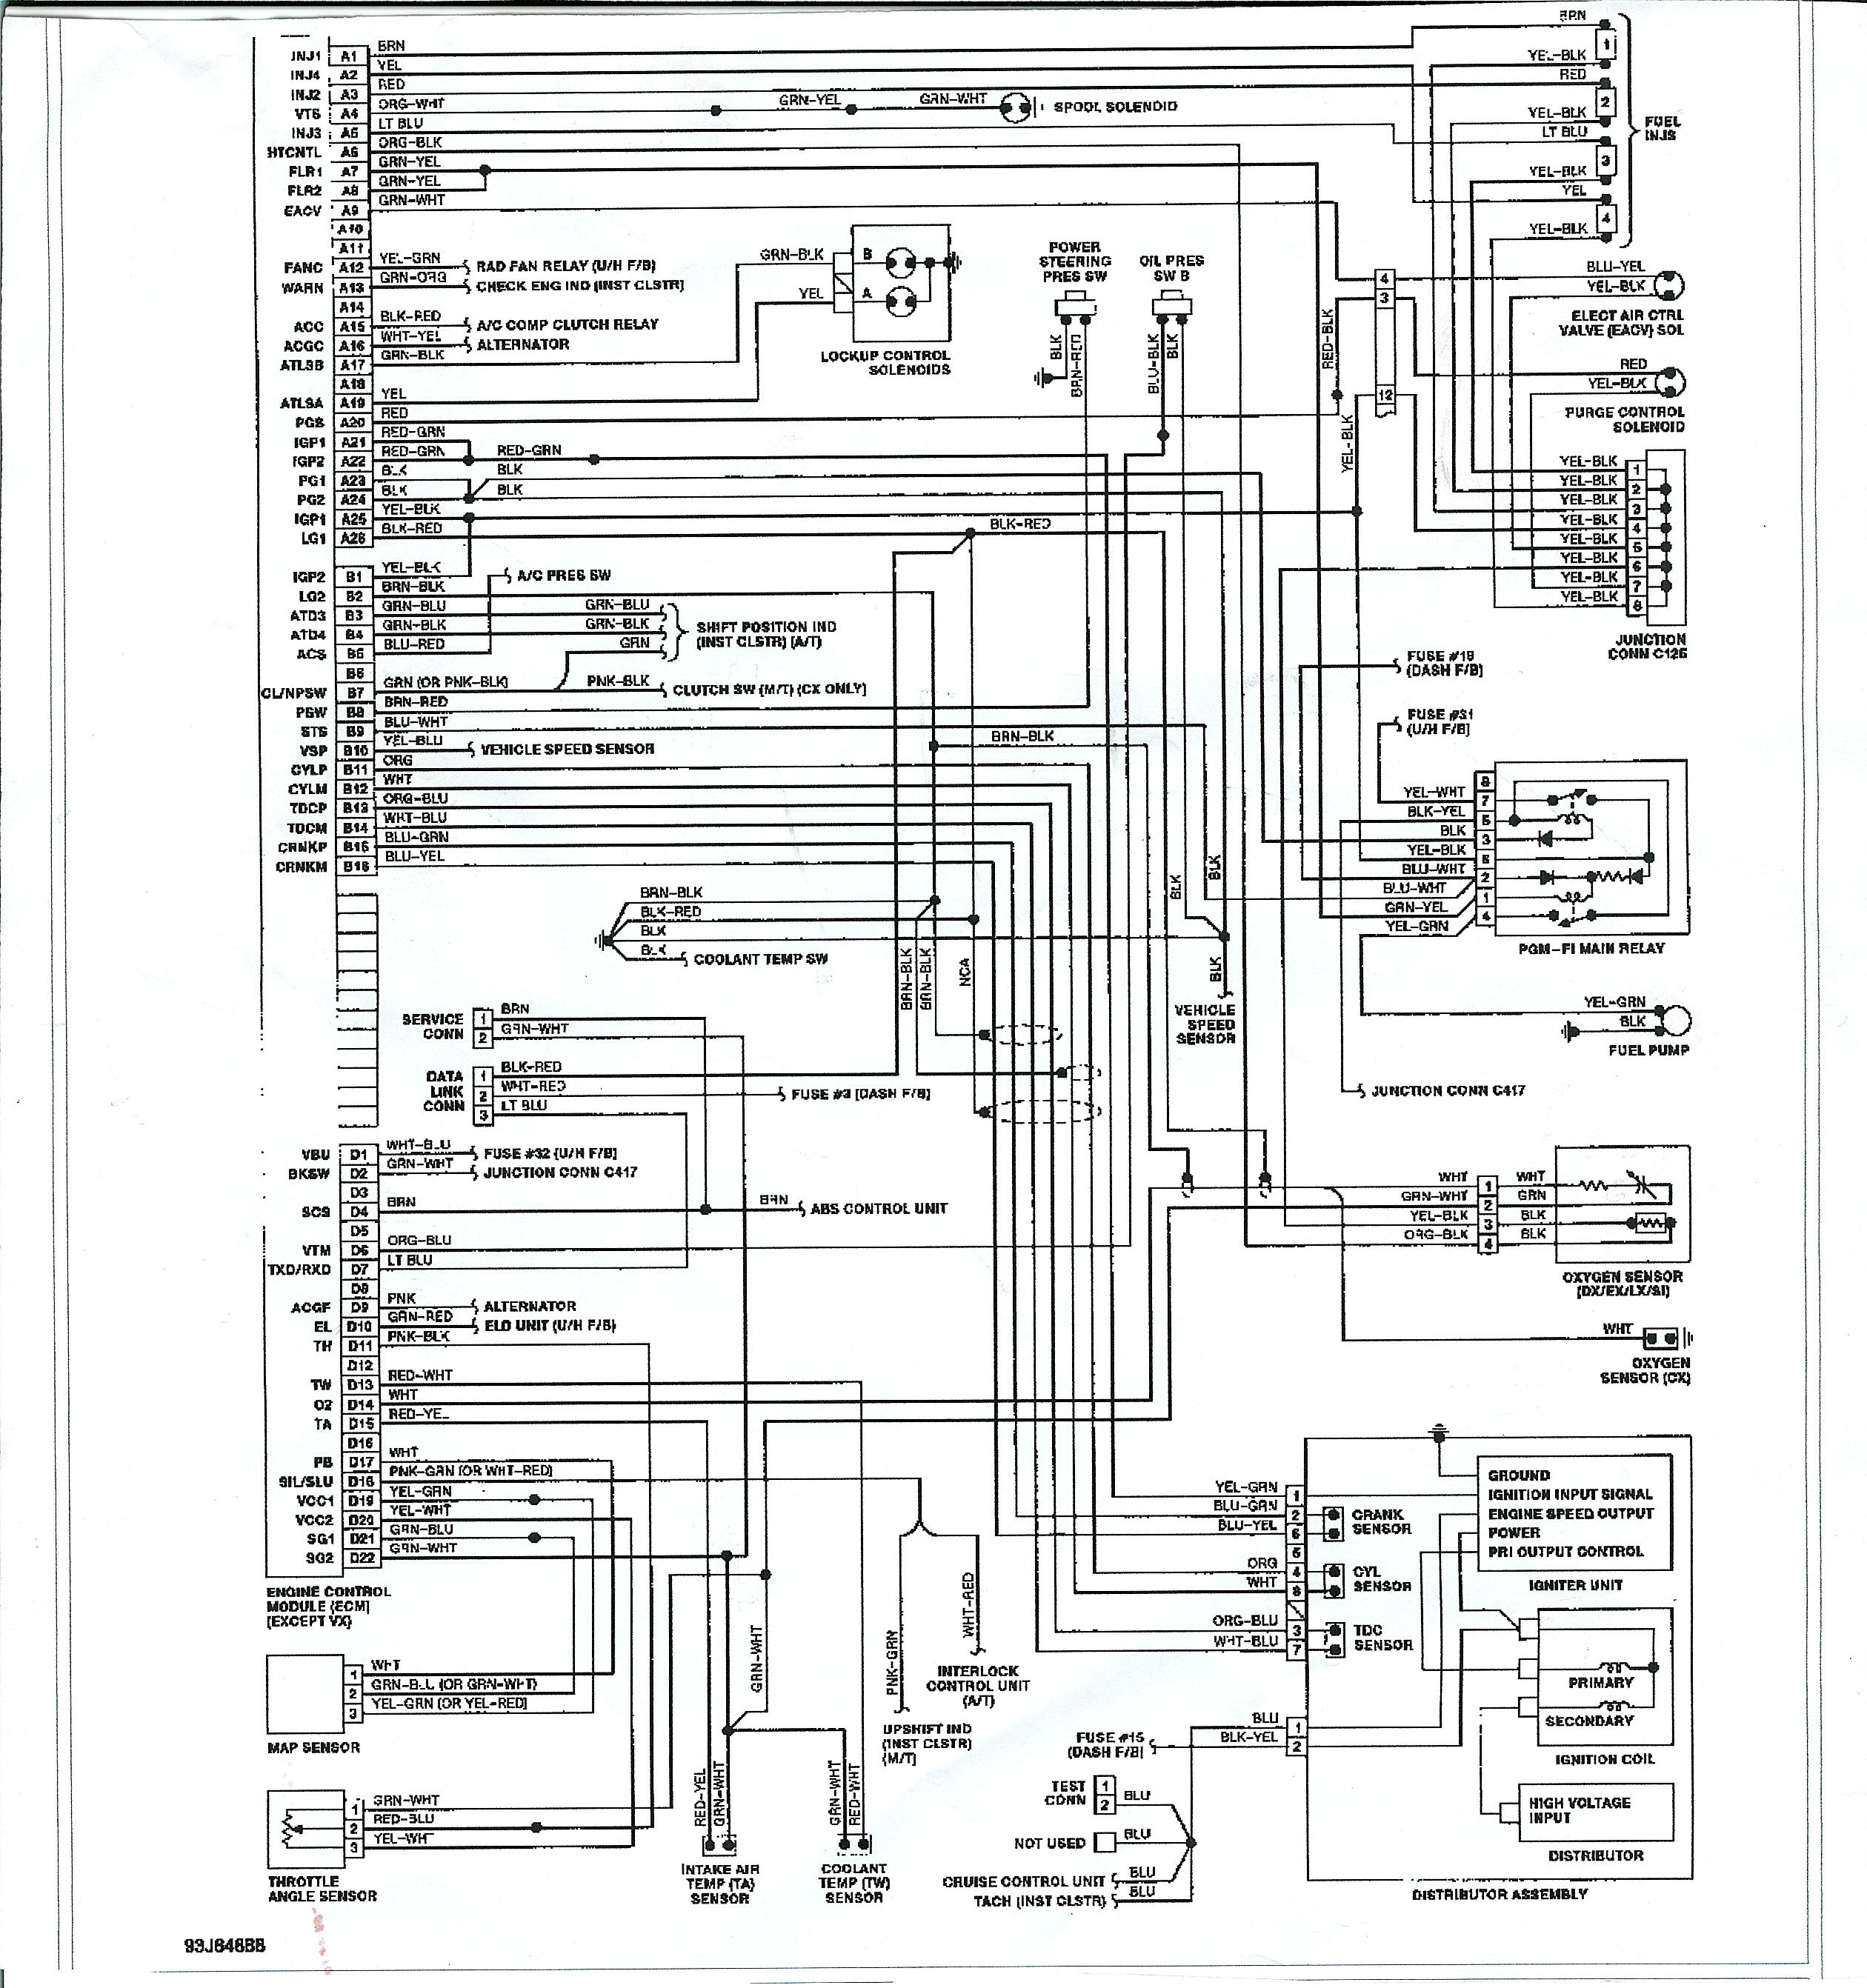 door honda p28 ecu wiring diagram honda civic vtec engine honda